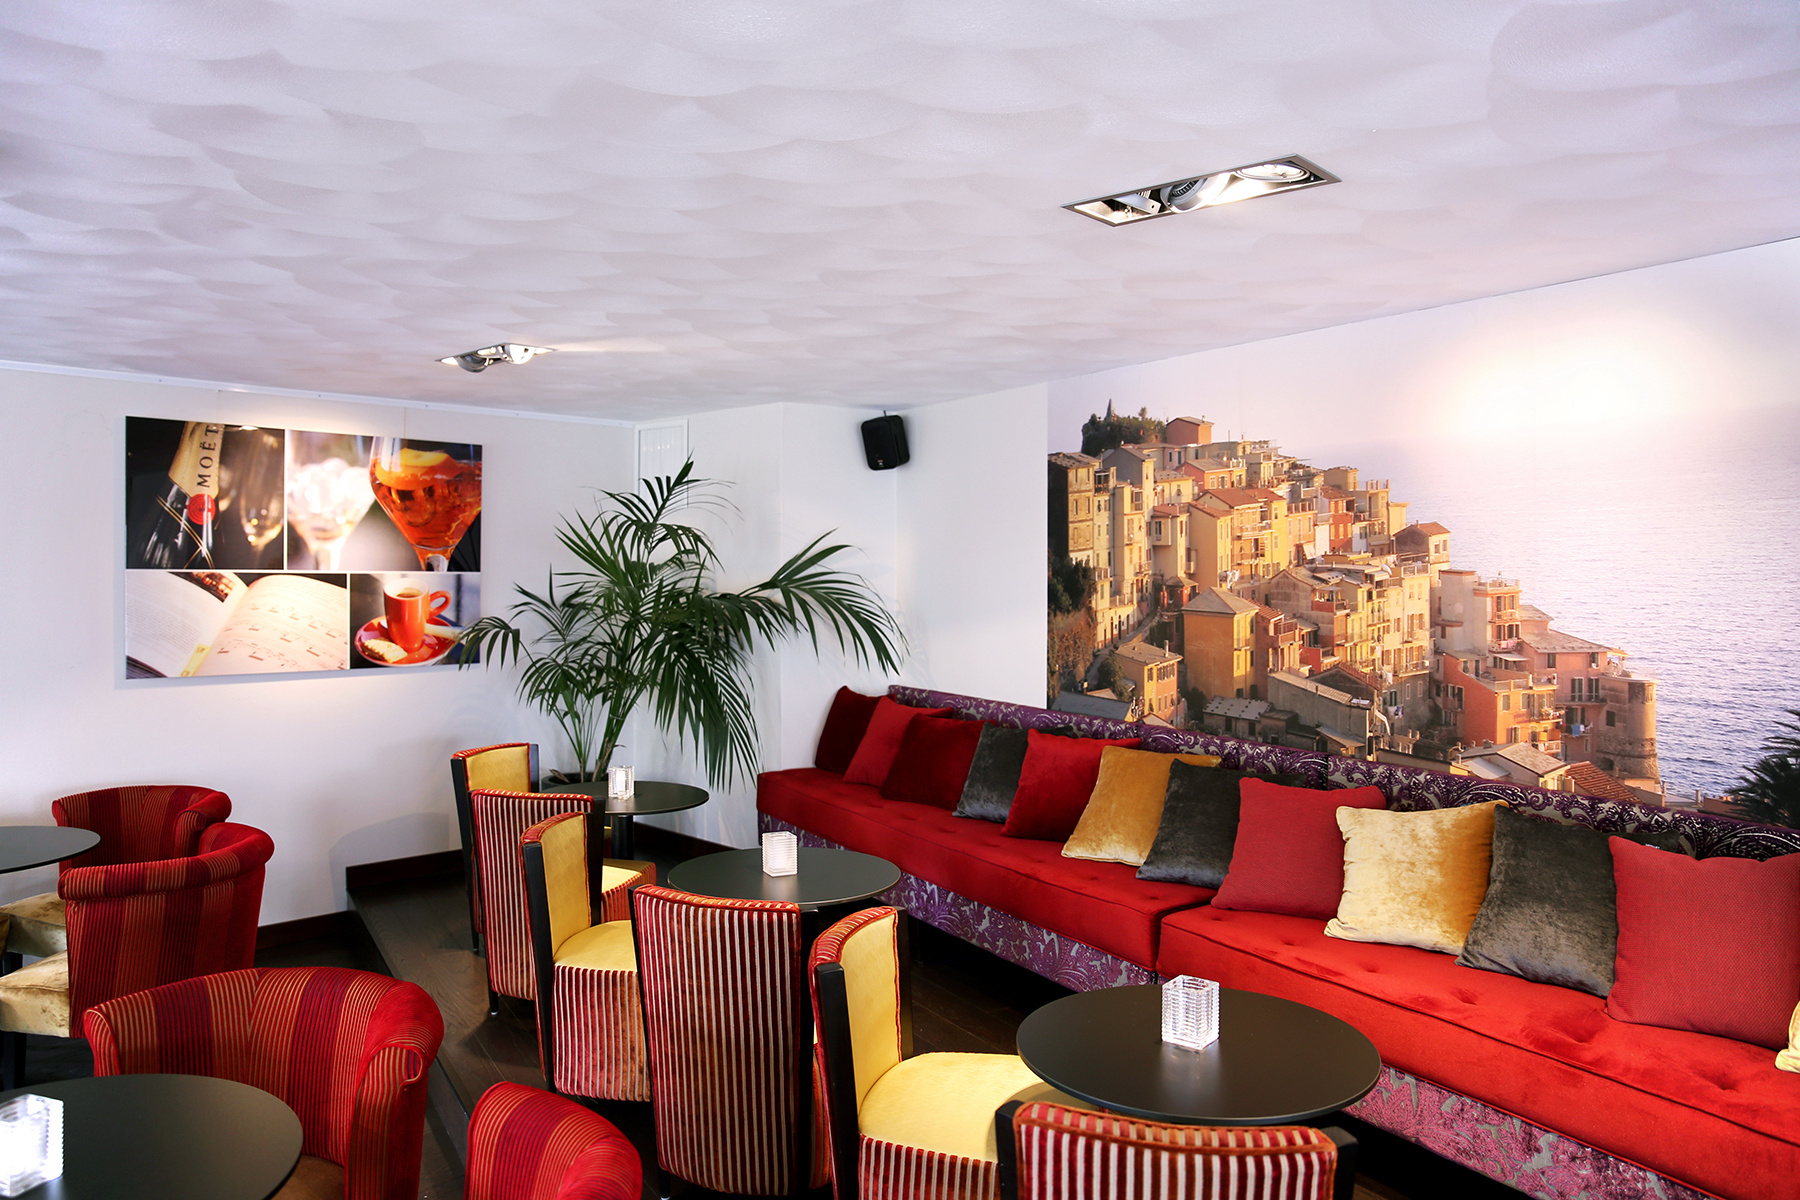 Second commission for Restaurant Verdi: photo collage on Dibond with Liquid Gloss finish (left) and as wallpaper (right)